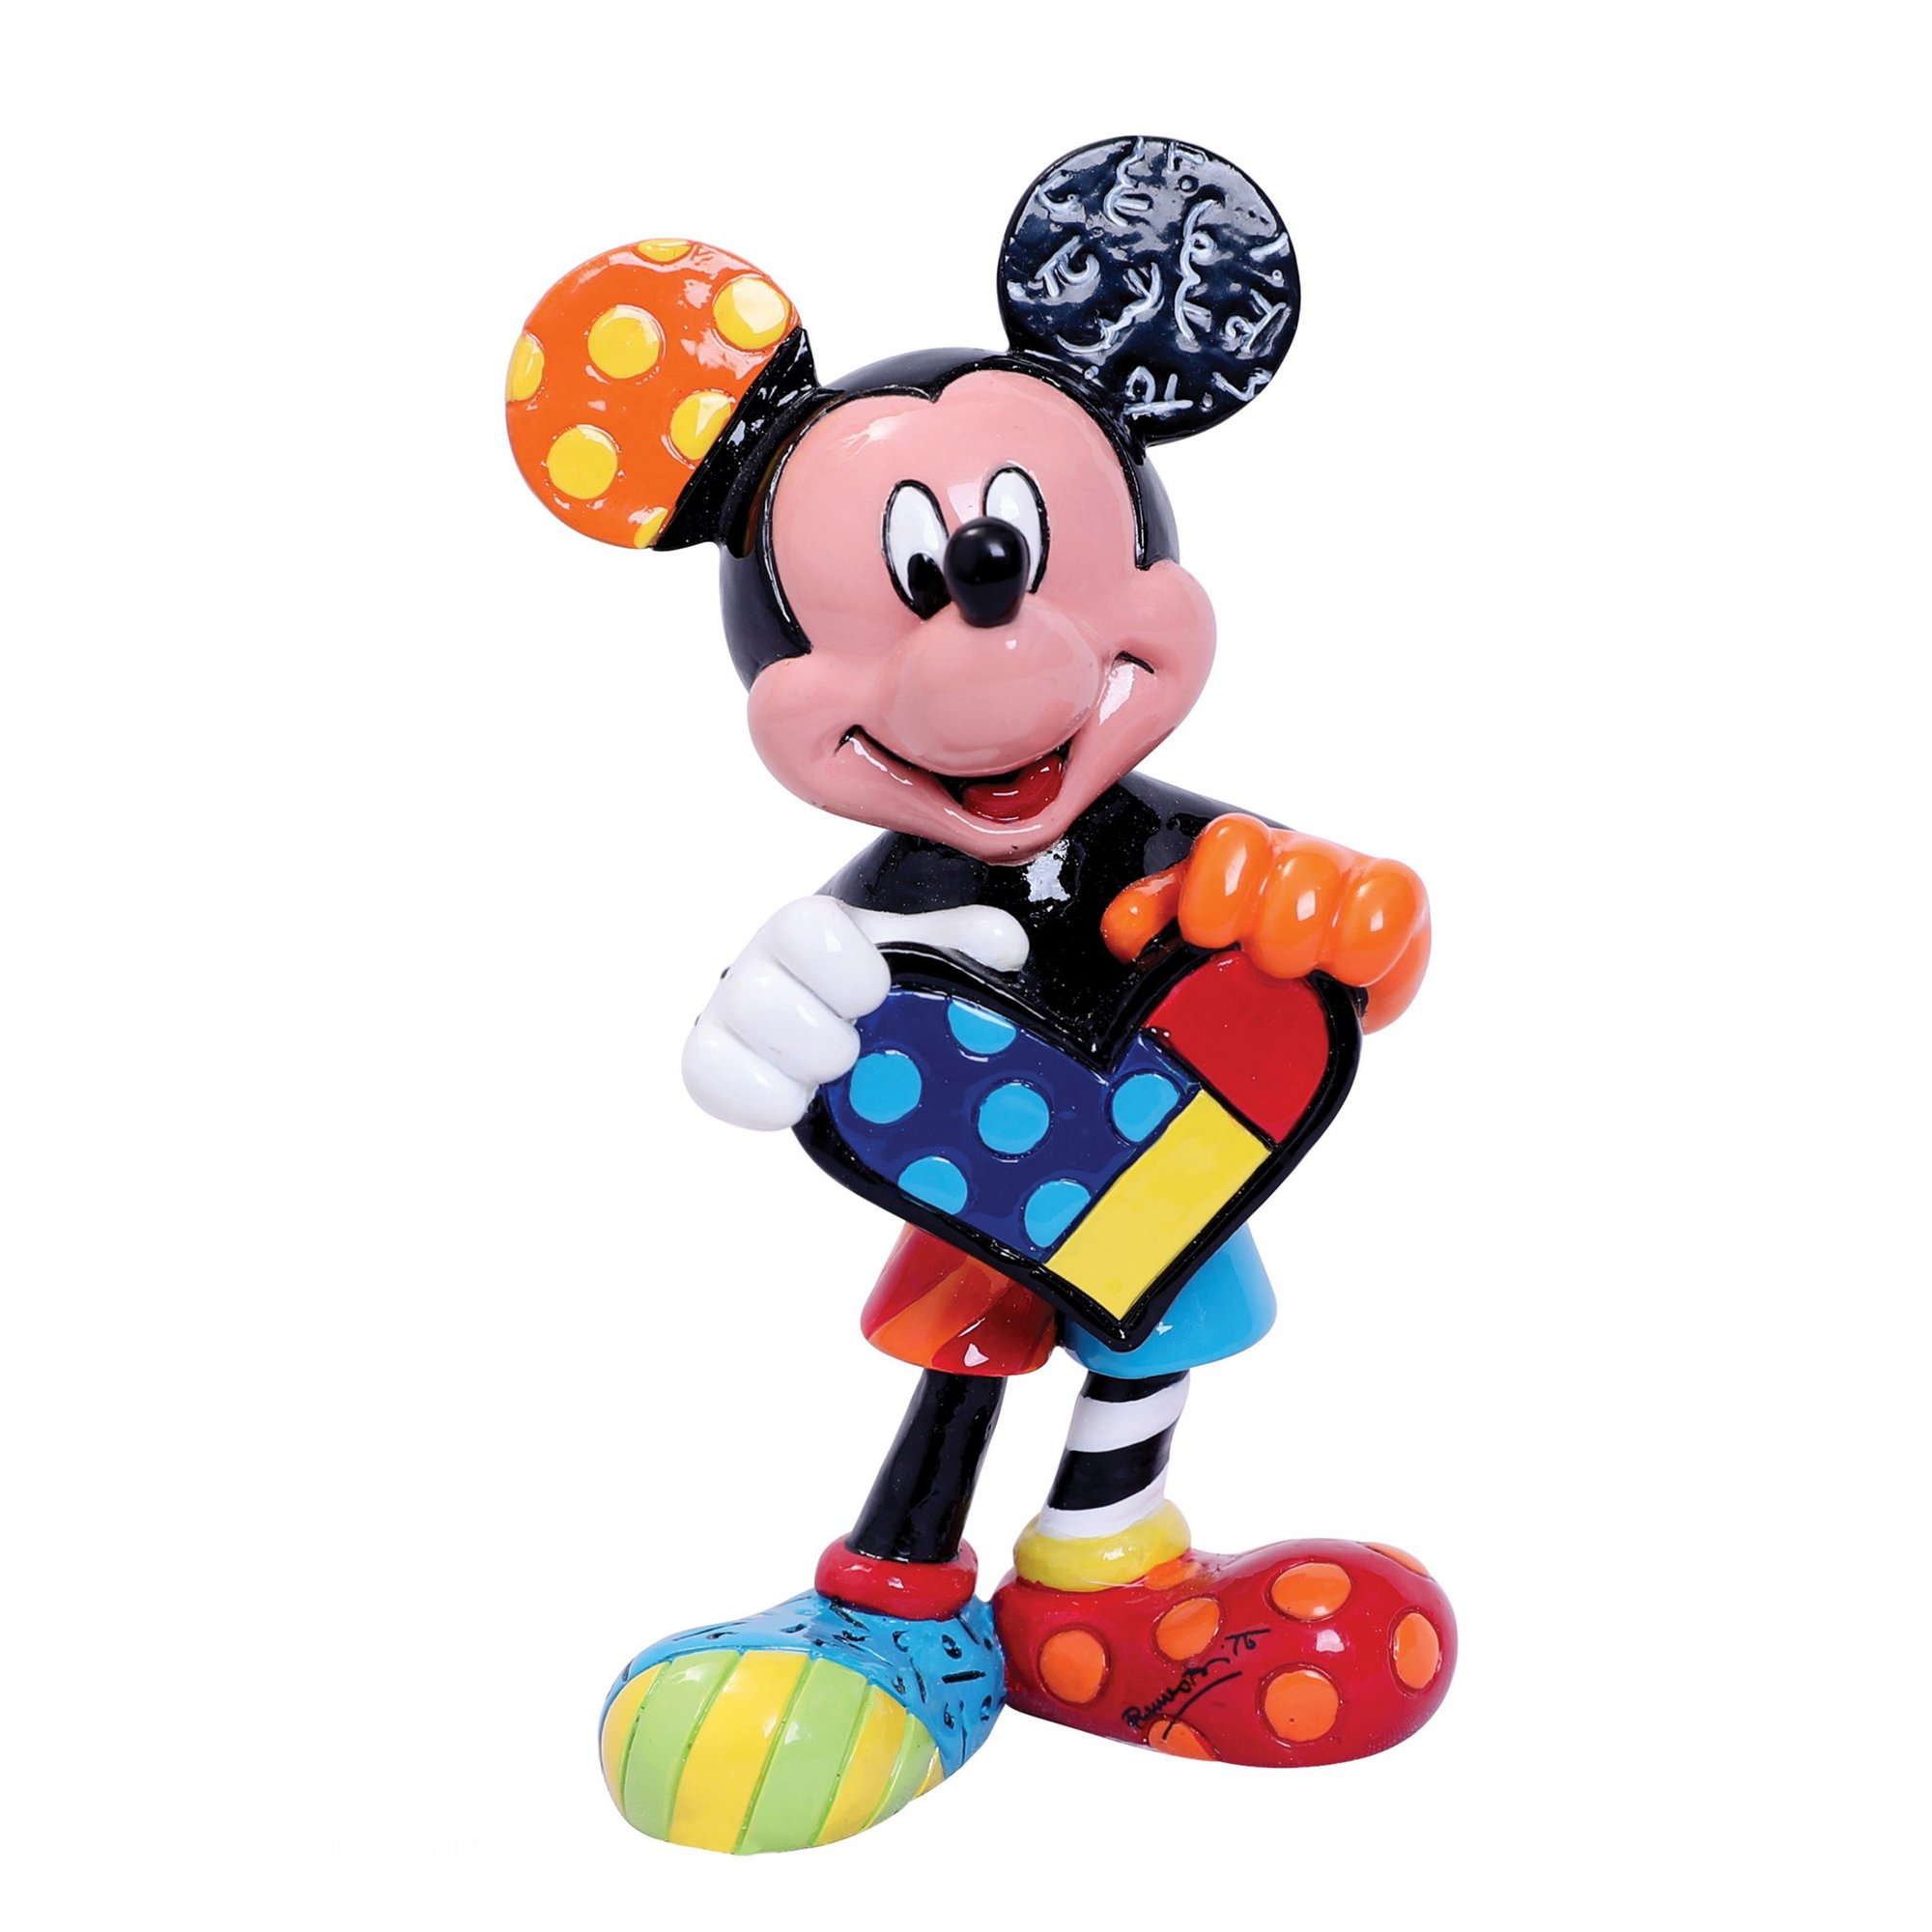 Image of Disney Britto Mickey Mouse Mini Figurine